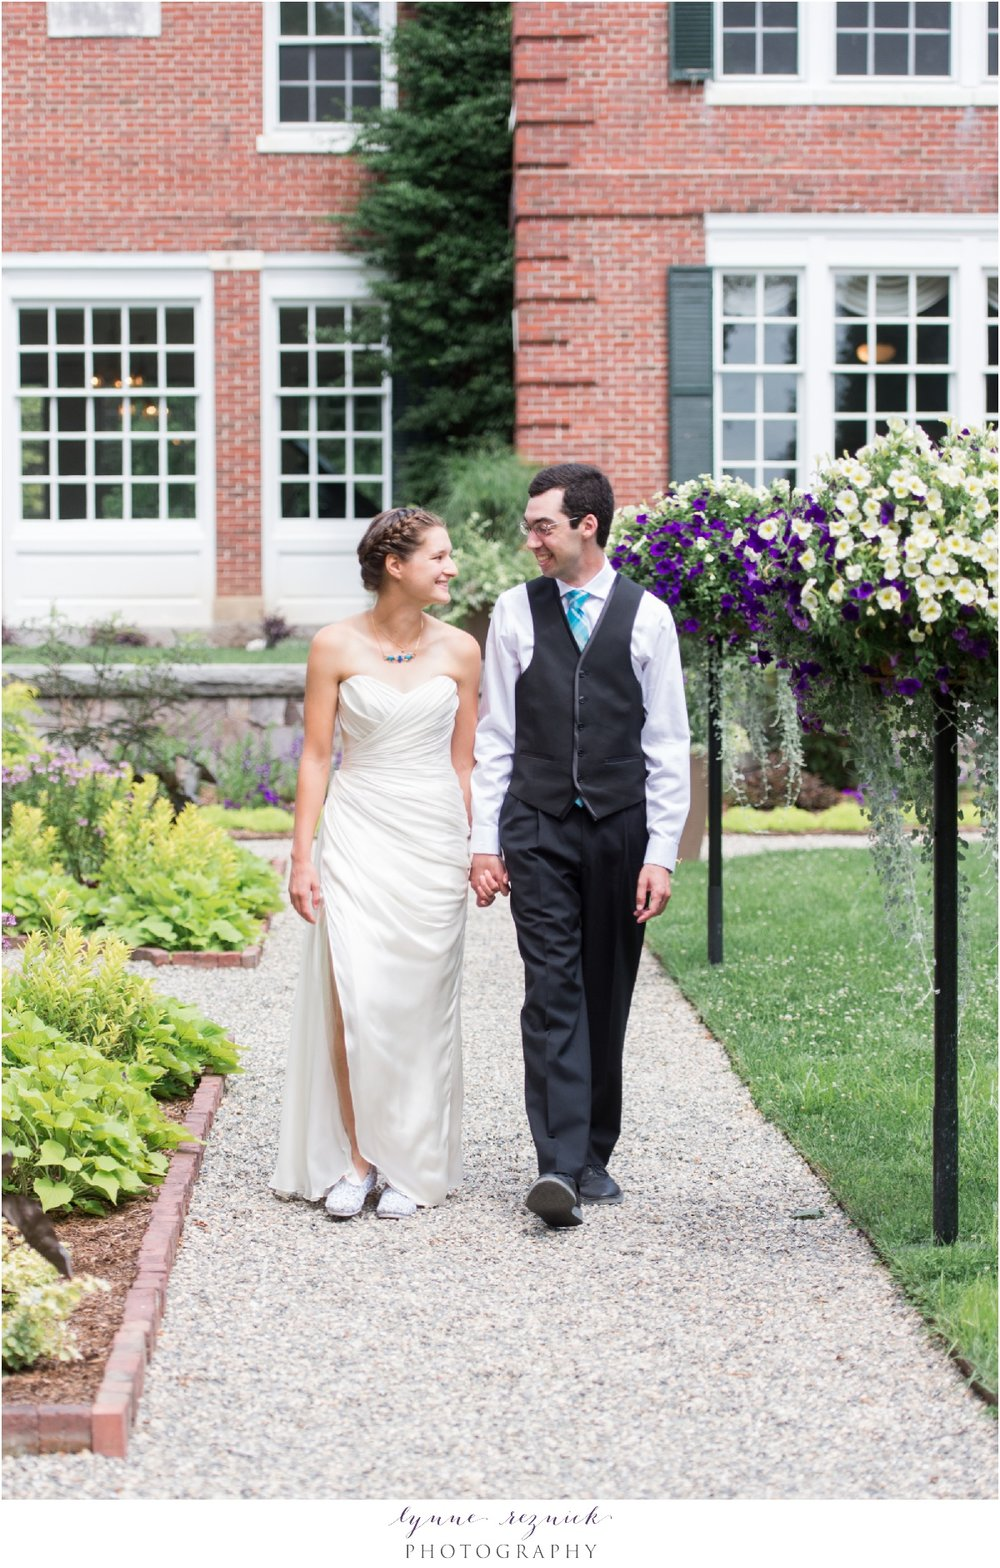 The Eleanor Bradley Estate mansion is a stunning bridal background for a summer wedding